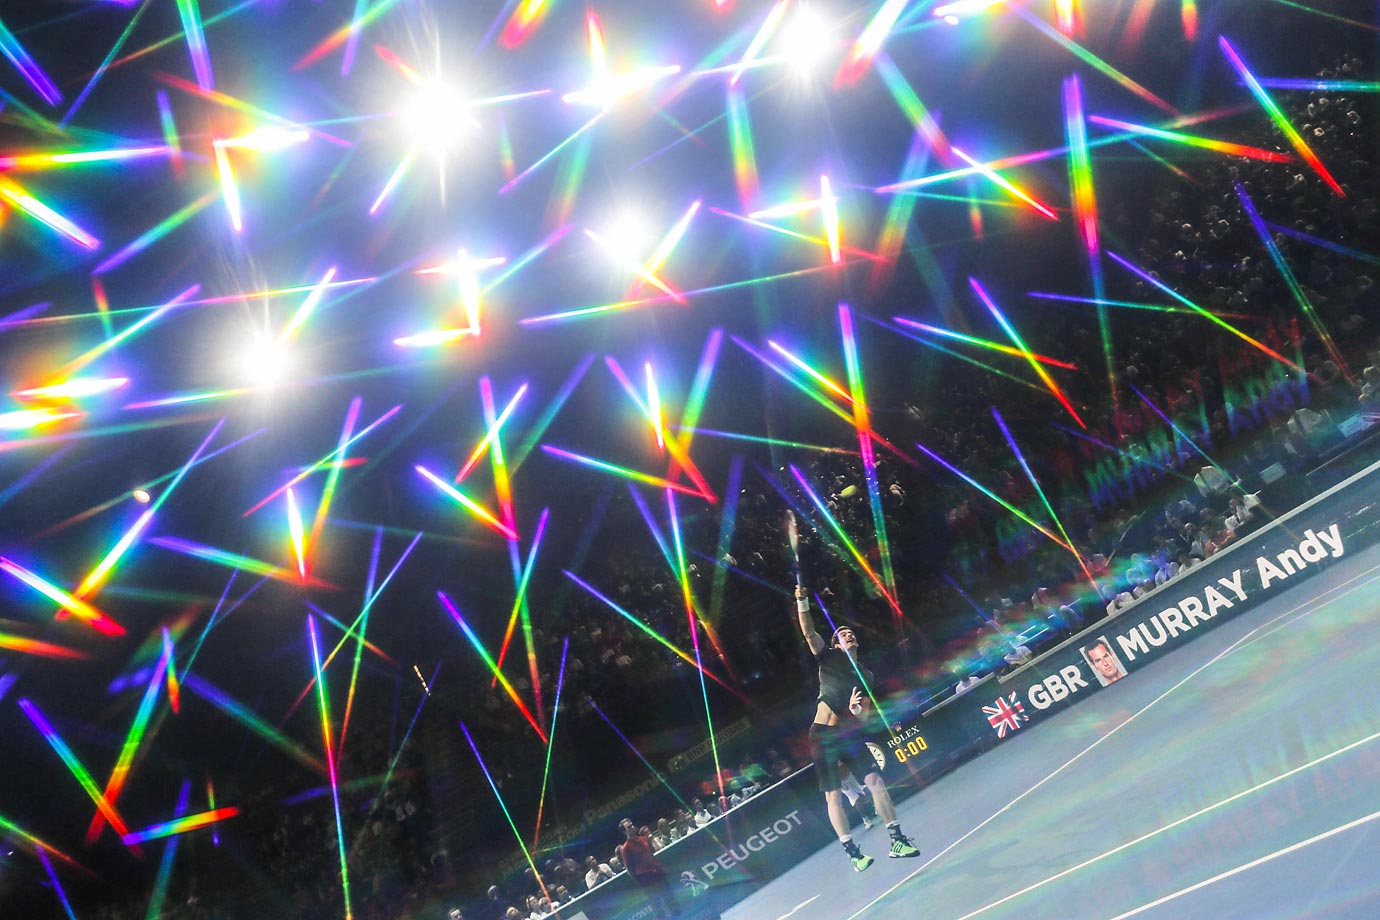 Prisms of light fly overhead during the round-of-16 match between Grigor Dimitrov and Andy Murray at the BNP Paribas Masters in Paris. Murray won 6-3, 6-3.